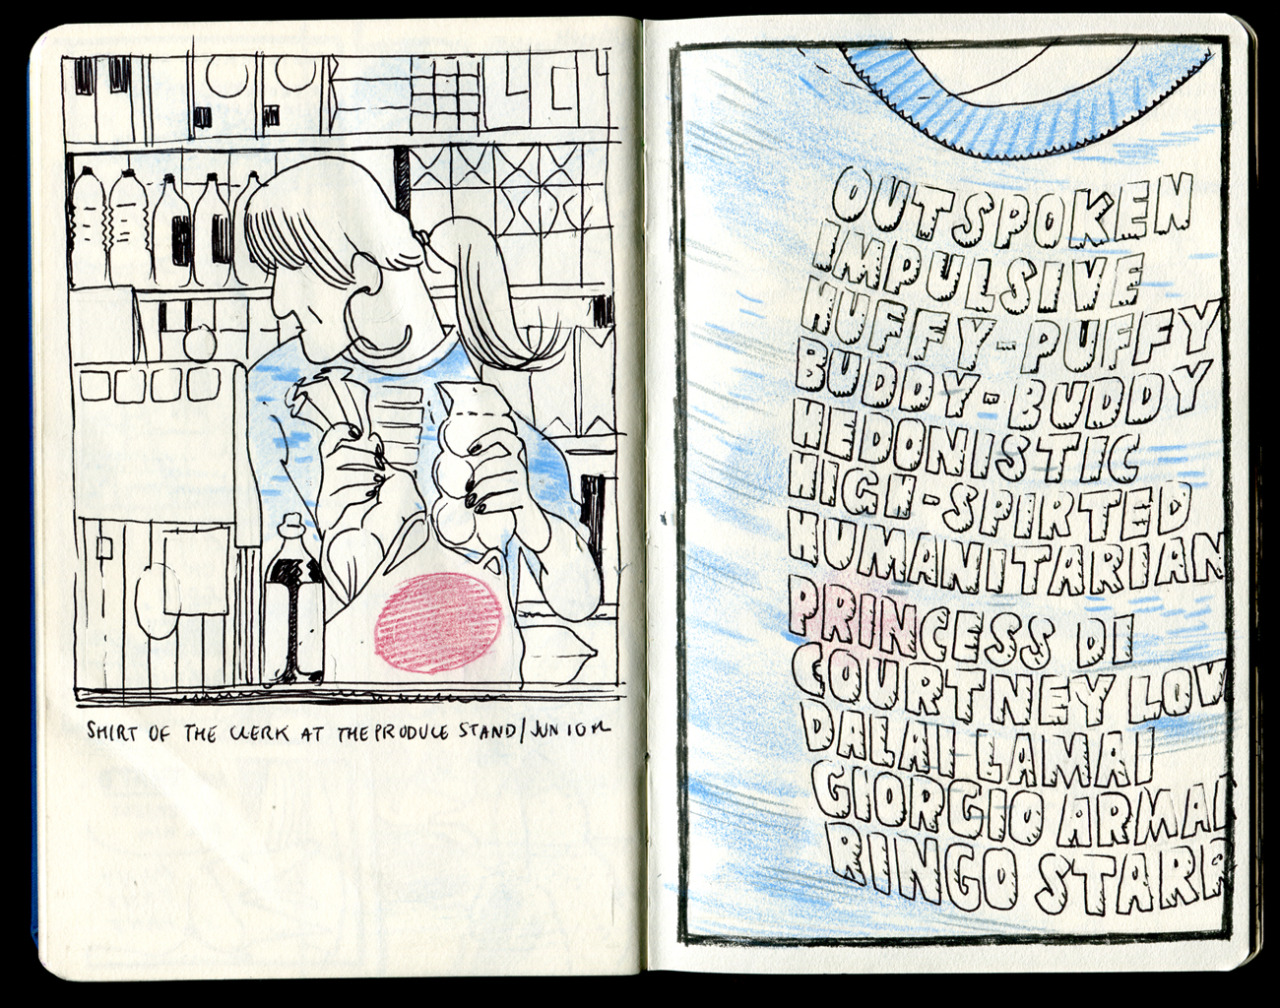 Some sketchbook pages from earlier this summer